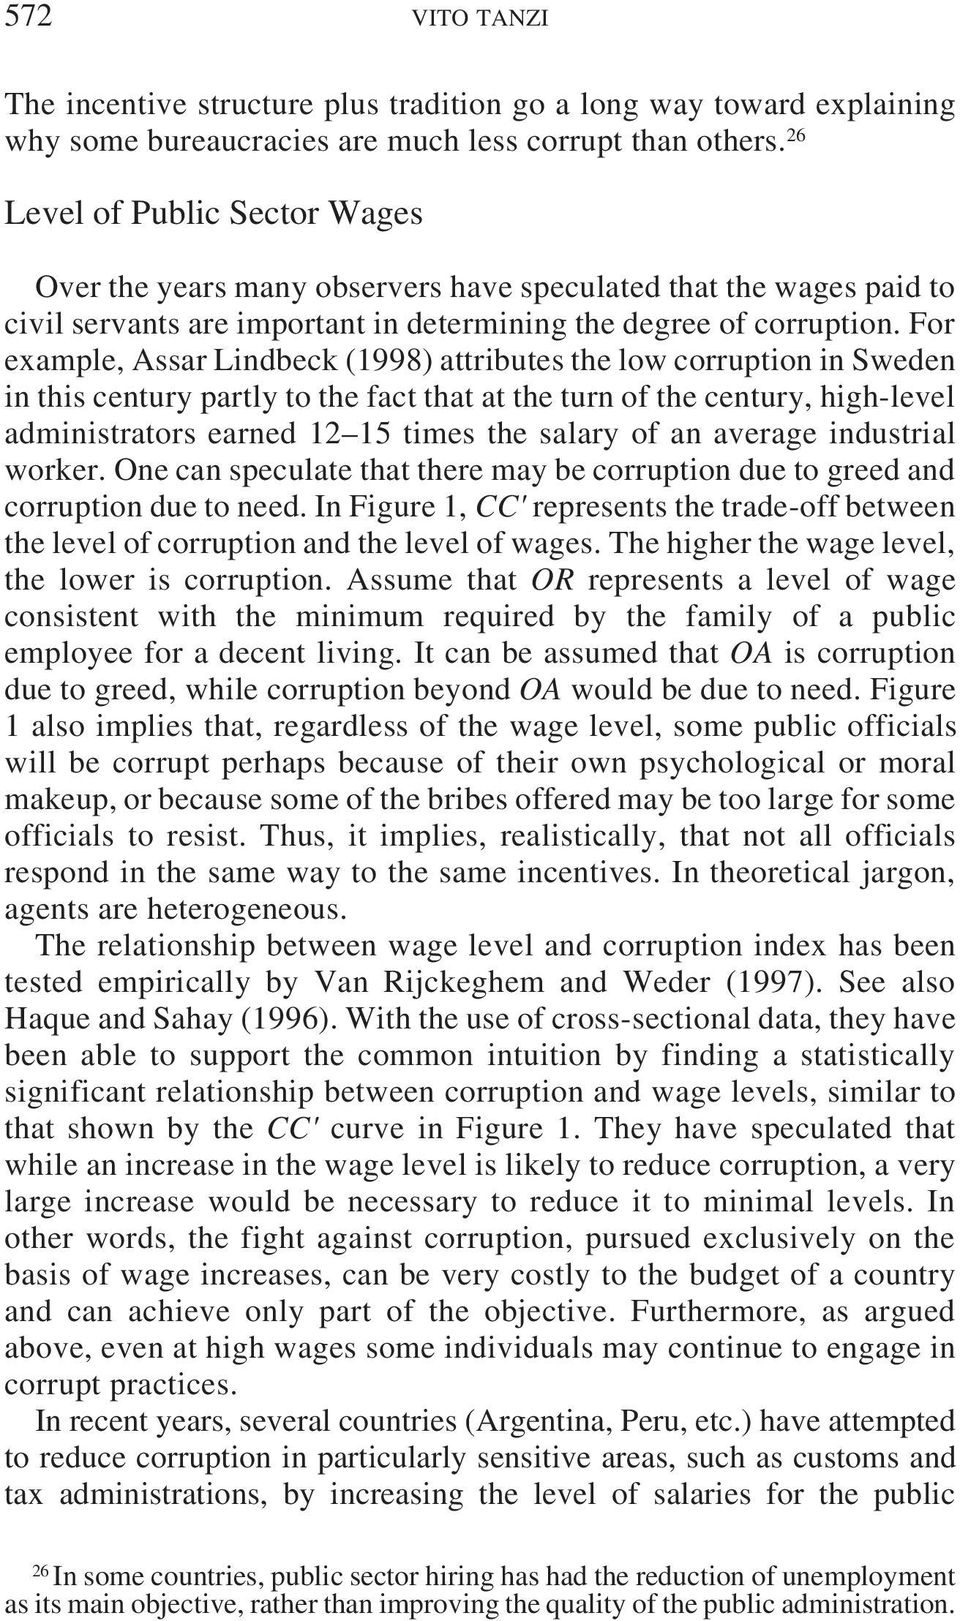 For example, Assar Lindbeck (1998) attributes the low corruption in Sweden in this century partly to the fact that at the turn of the century, high-level administrators earned 12 15 times the salary